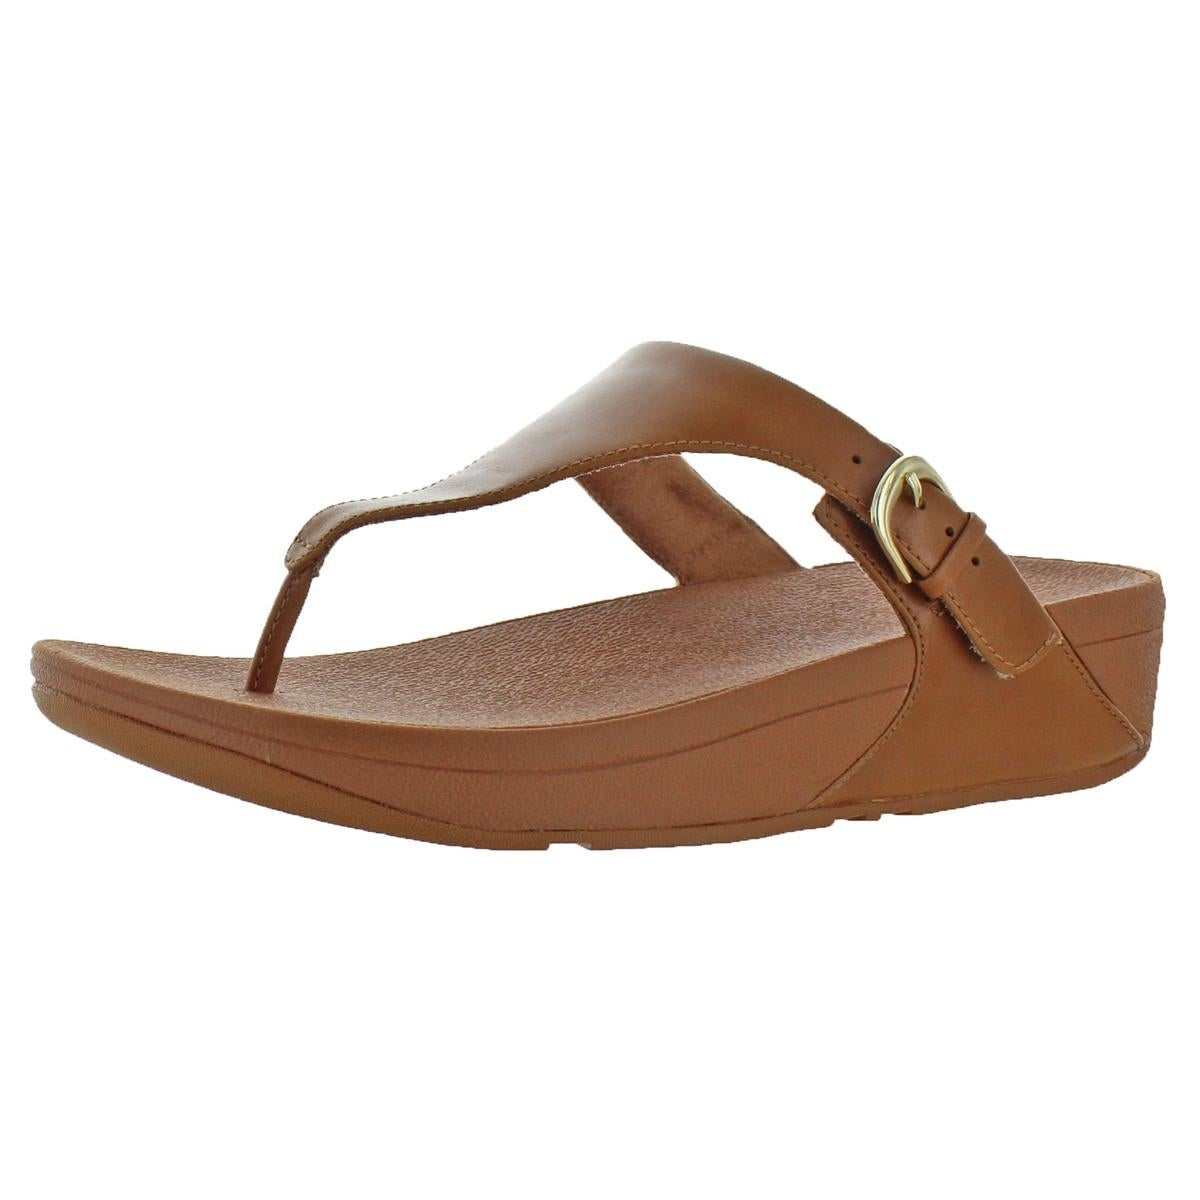 5cc61fe19 Shop Fitflop Womens Skinny Toe Thong Thong Sandals Toning Comfort - Free  Shipping On Orders Over  45 - Overstock.com - 21475414